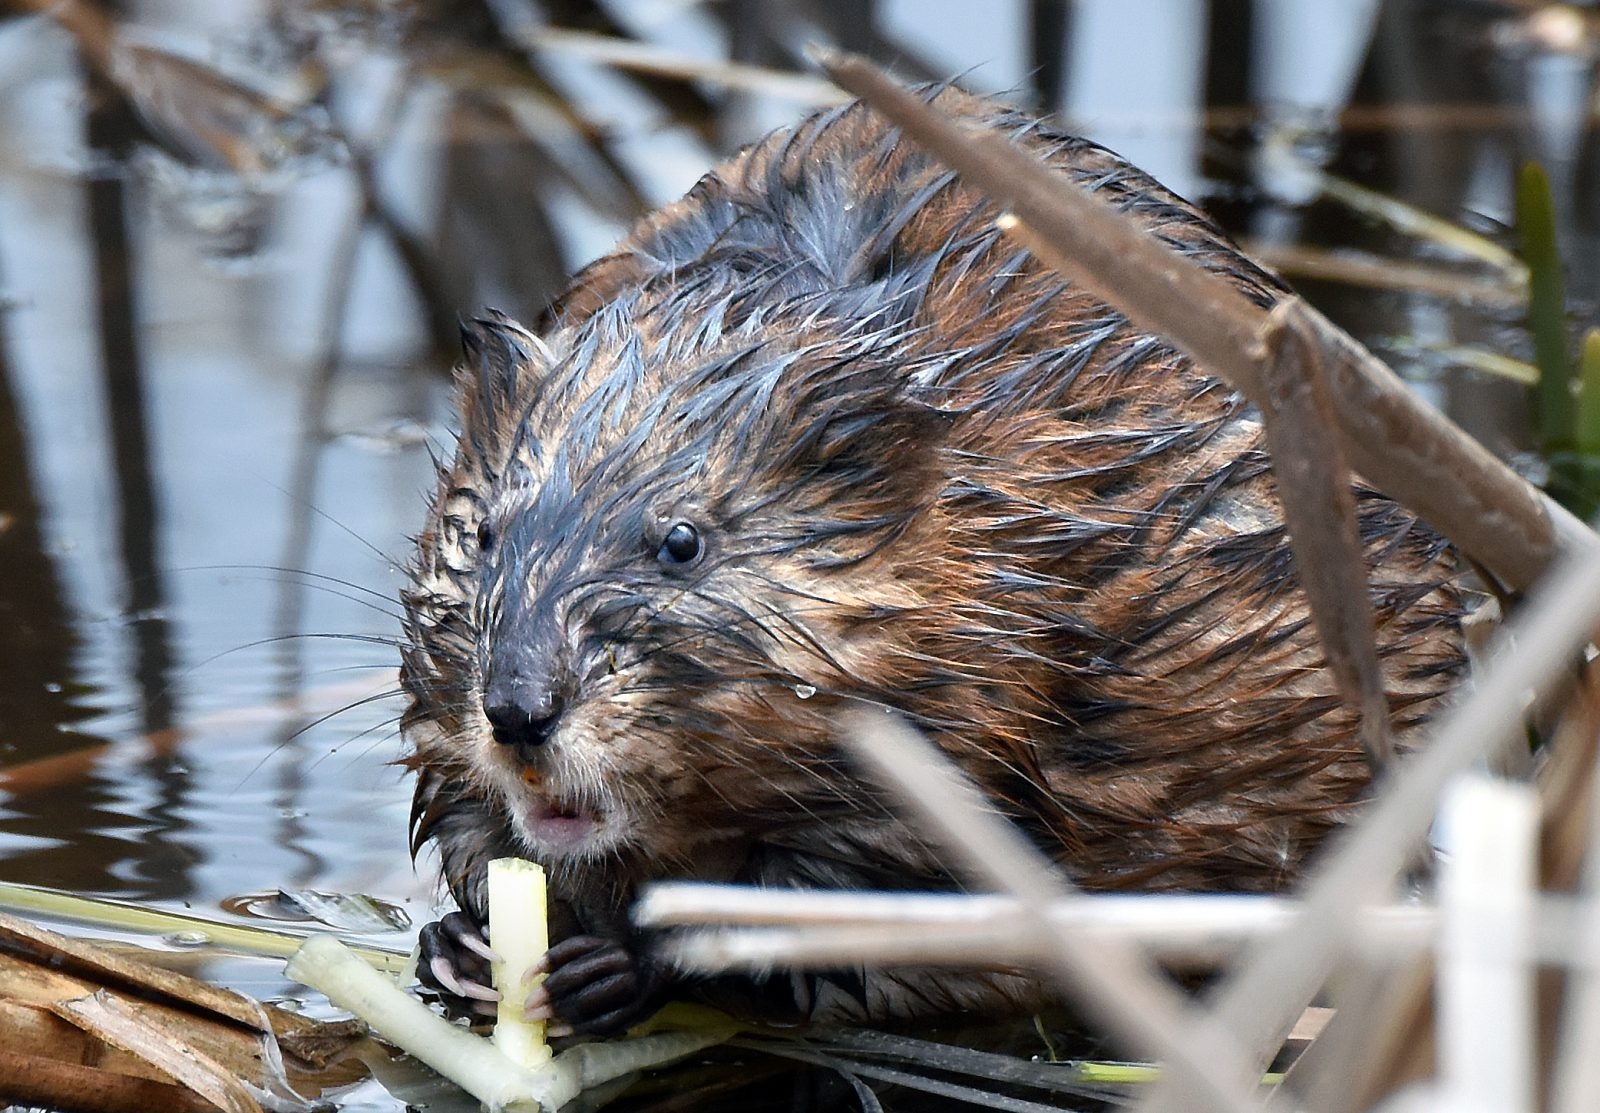 A muskrat in Great Meadows National Wildlife Refuge in Concord, Massachusetts